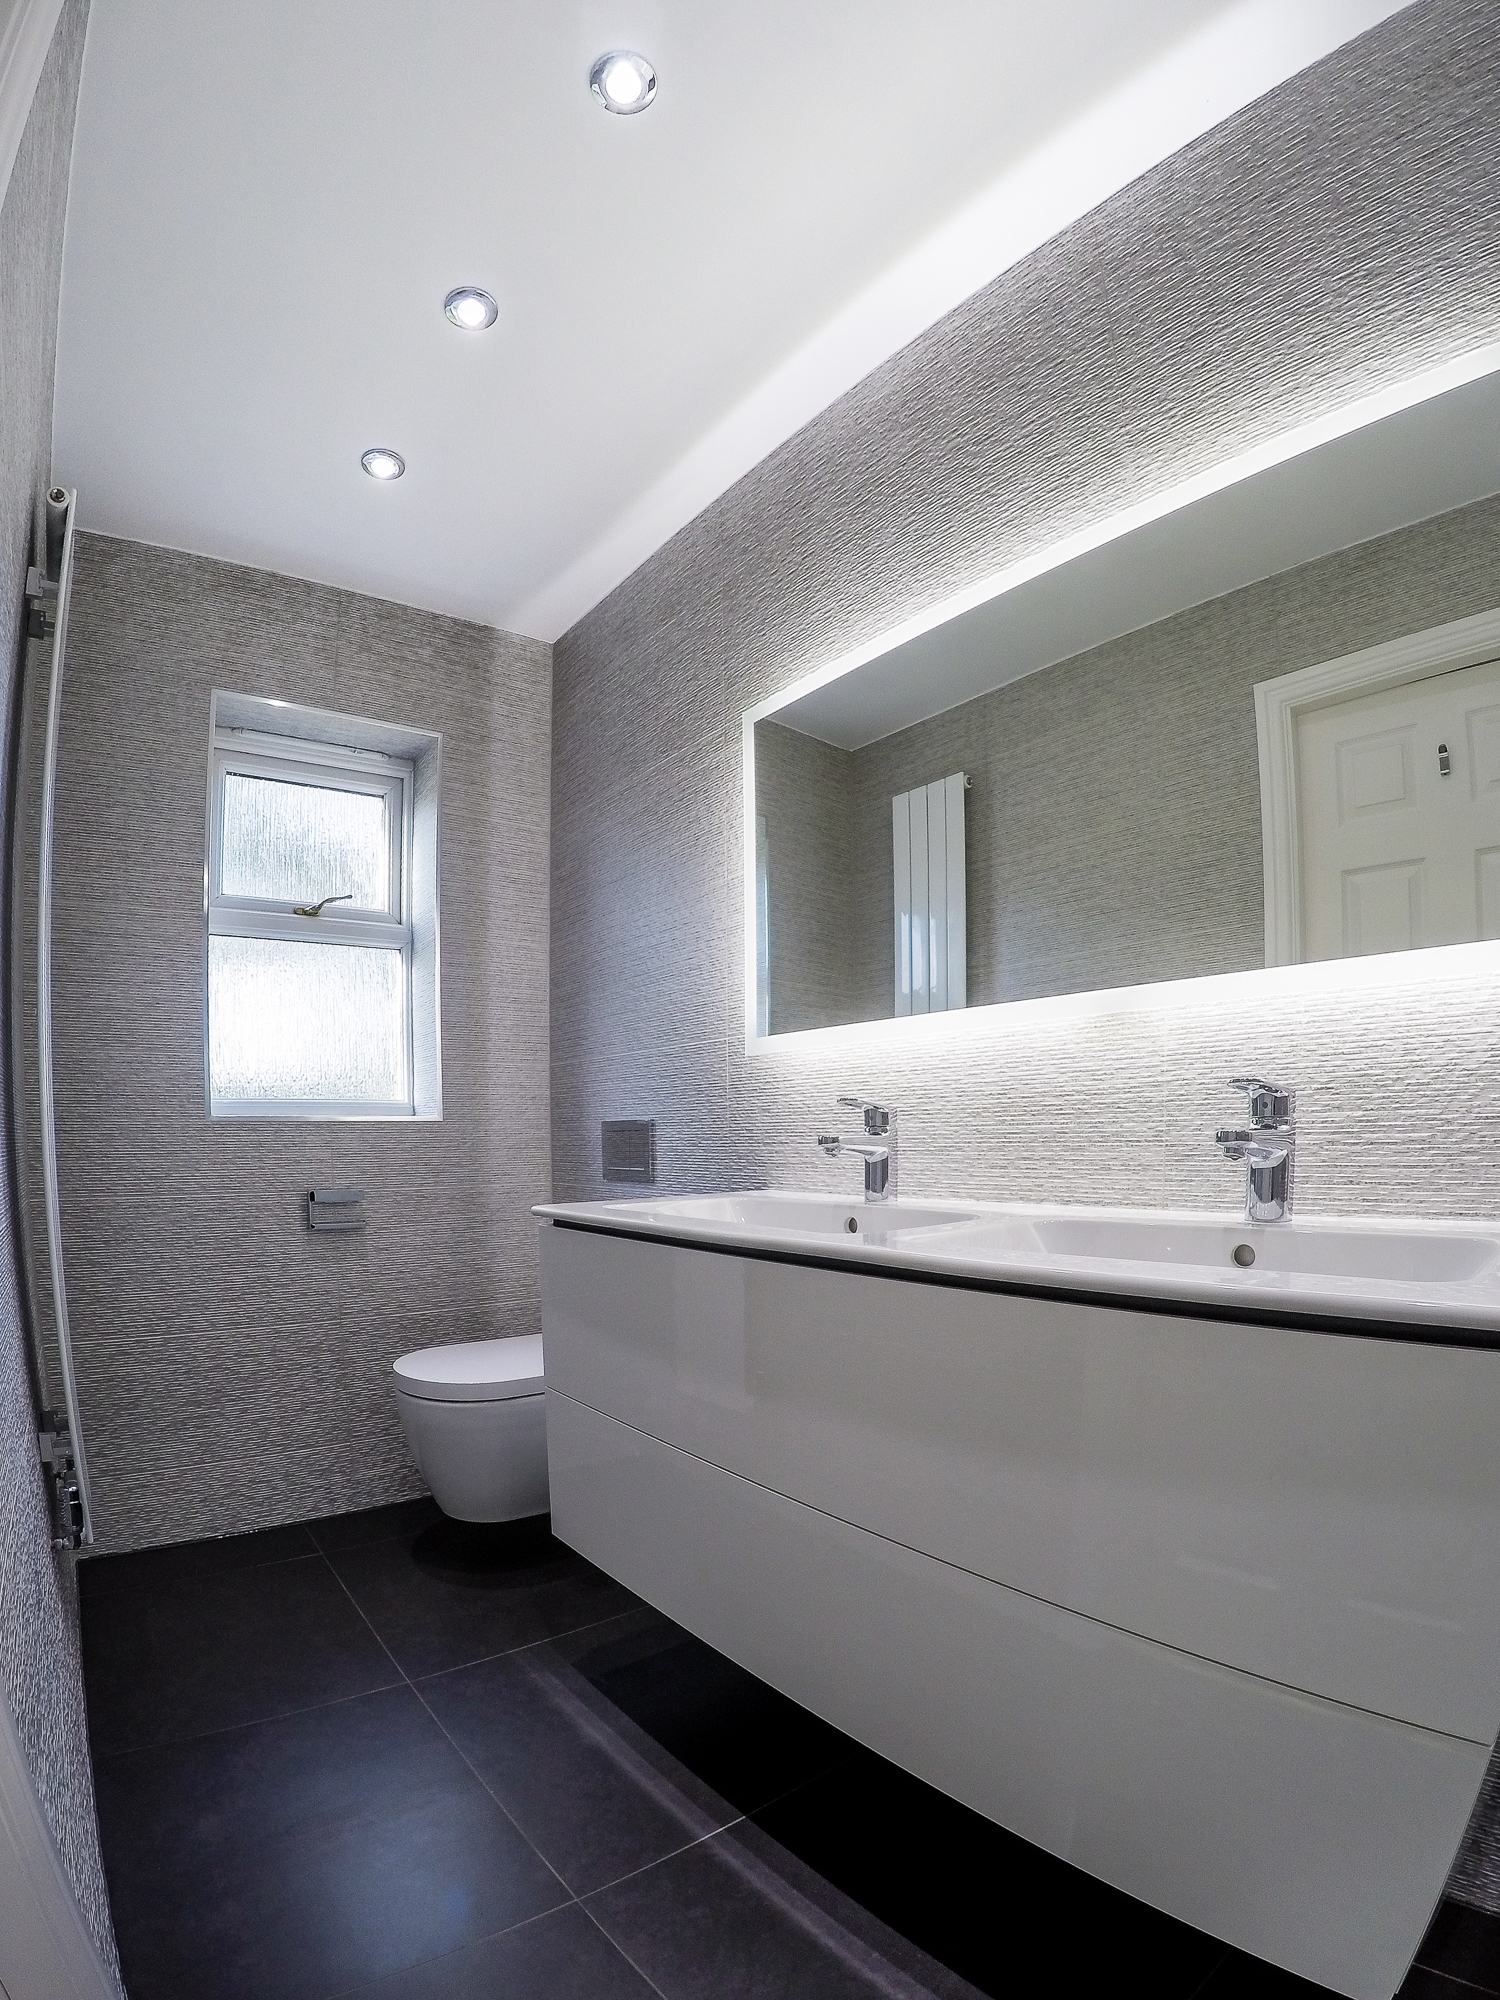 Gallery Cheshire Tiling Bathrooms - How long does it take to tile a bathroom